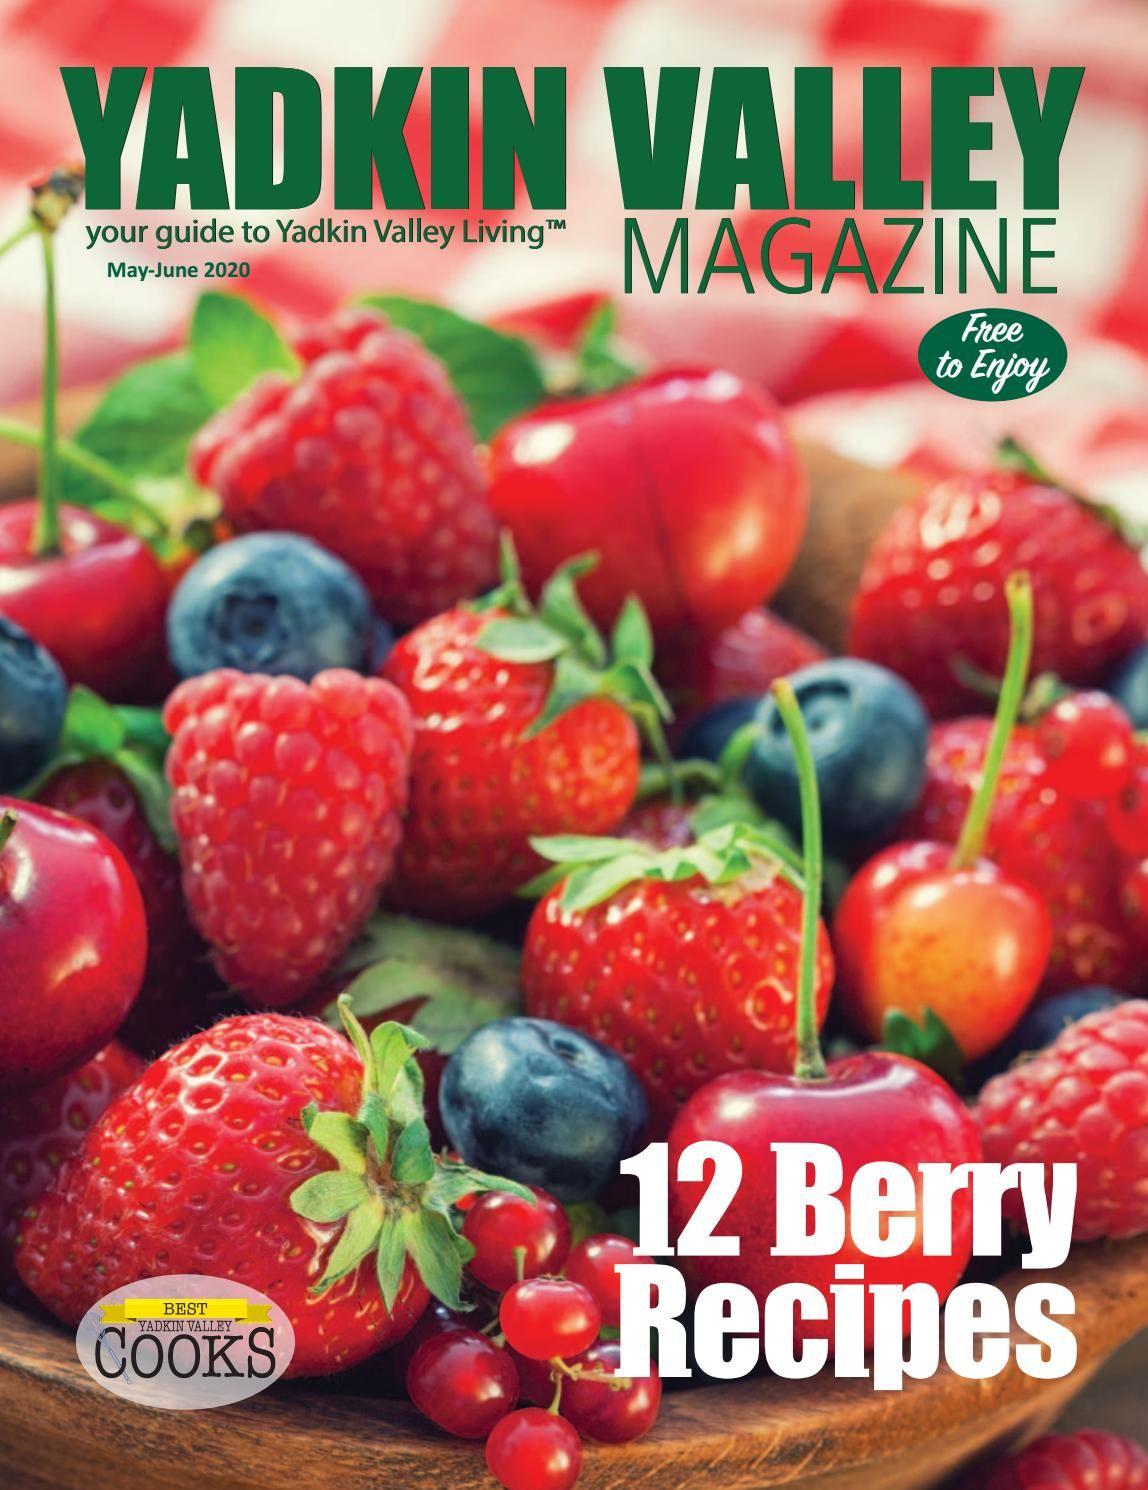 Yadkin Valley Magazine May June 2020 In 2020 Canned Strawberries Southern Recipes Baked Dishes